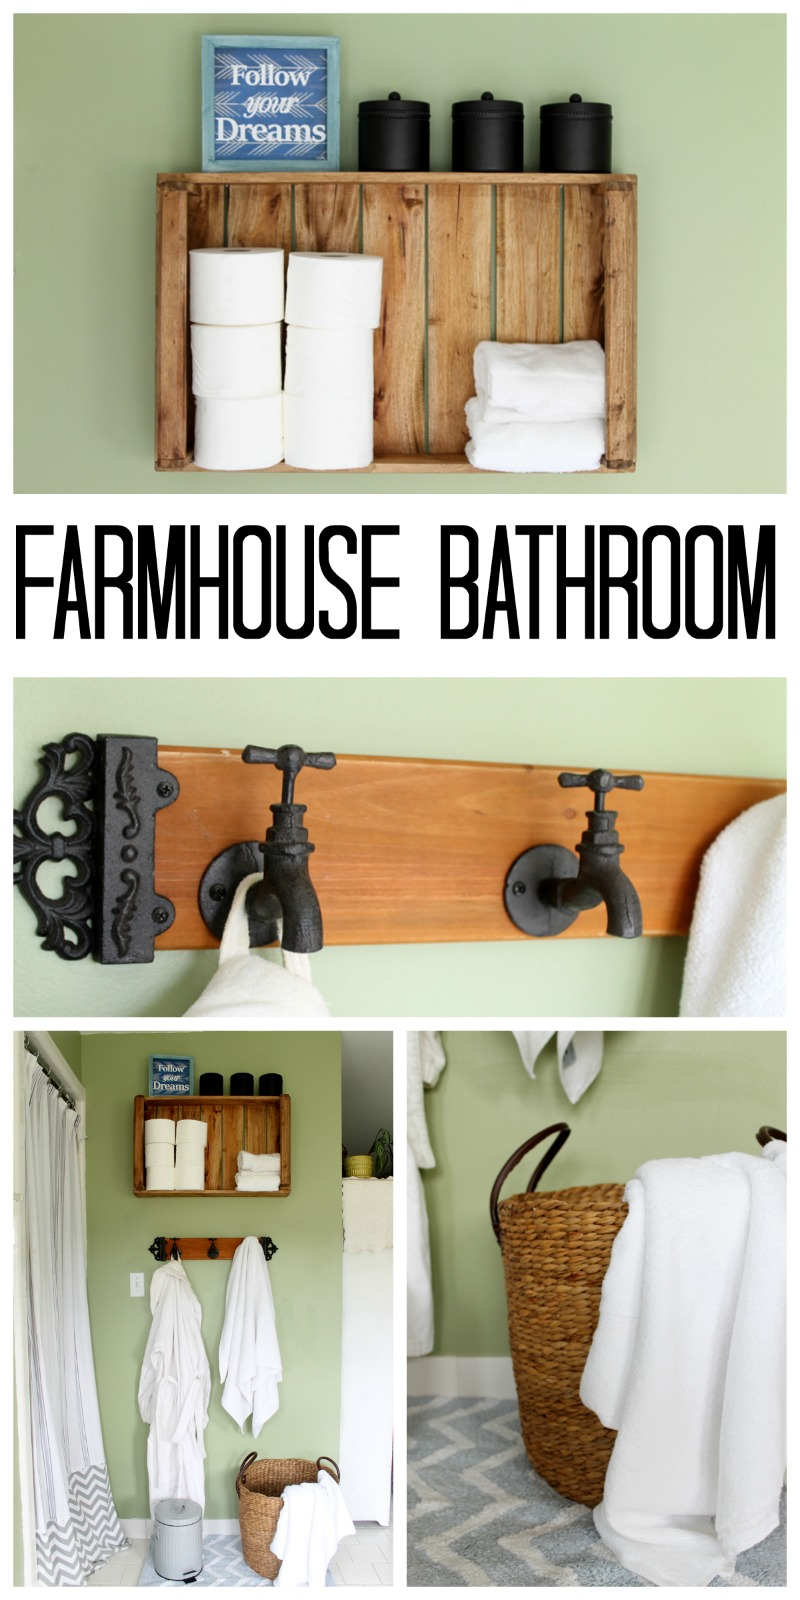 Rustic Farmhouse Bathroom Ideas - The Country Chic Cottage